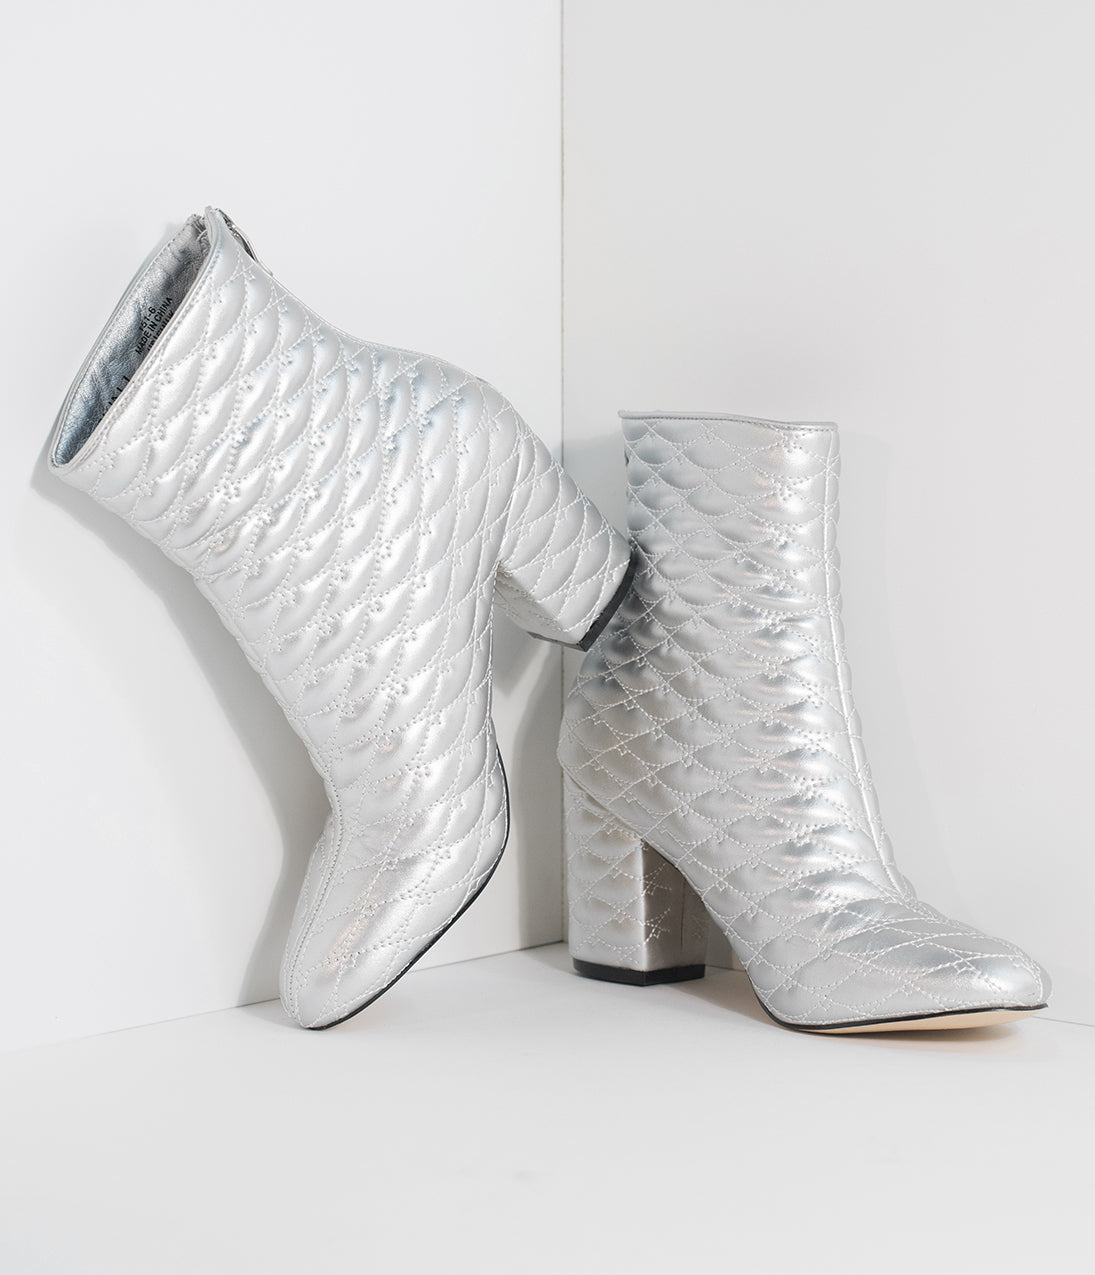 Retro Boots, Granny Boots, 70s Boots Metallic Silver Quilted Ankle Booties $46.00 AT vintagedancer.com